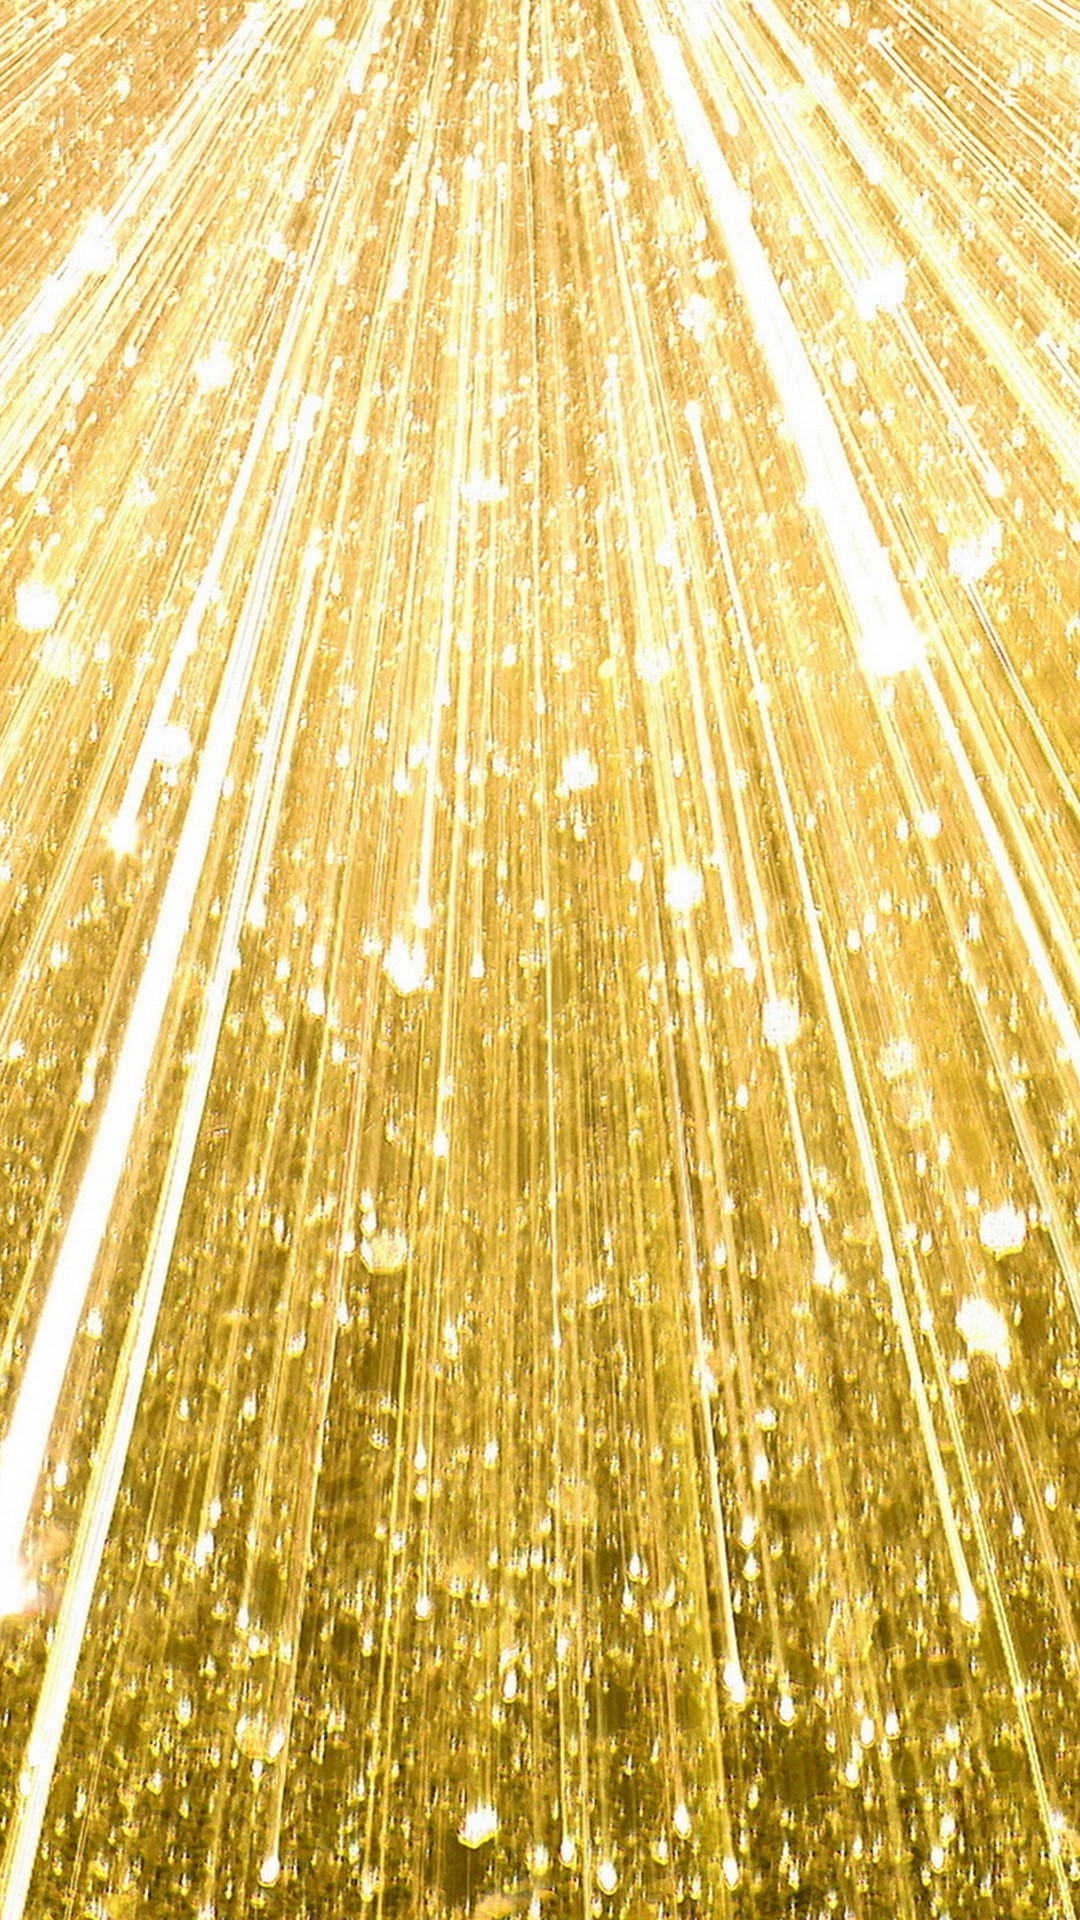 Gold Glitter Wallpaper Posted By John Anderson